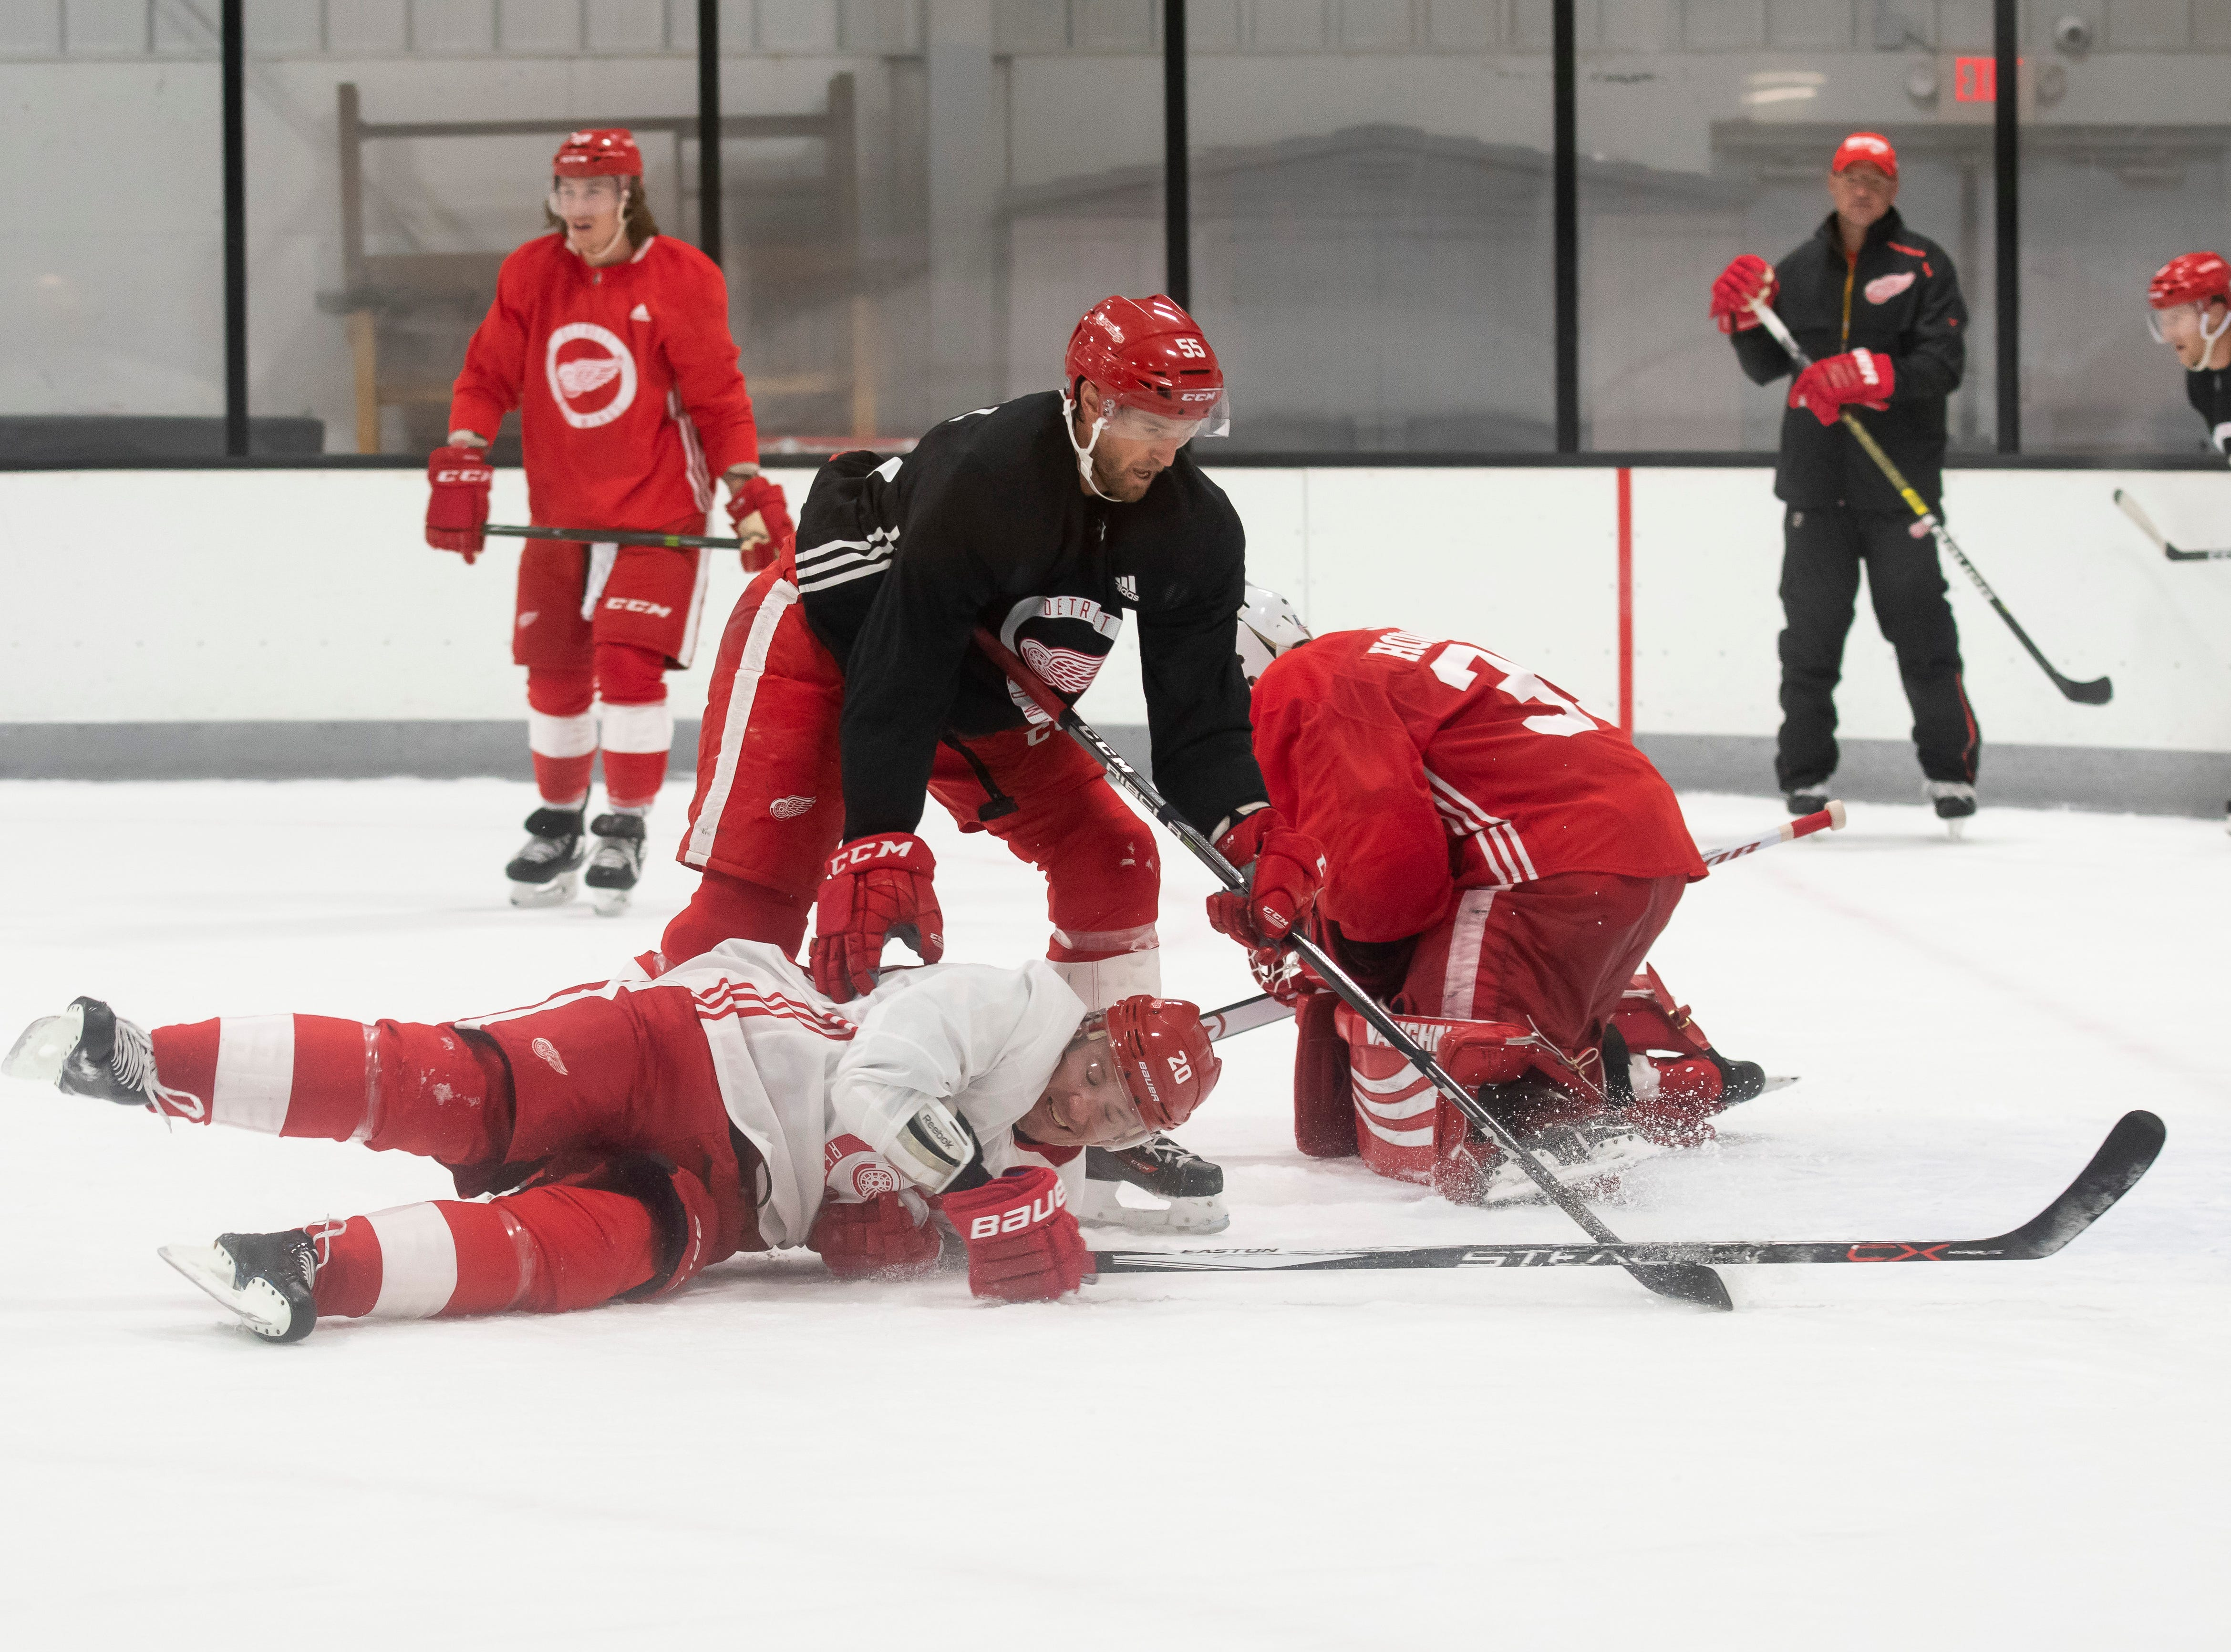 Detroit forward Jussi Jokinen crashes to the ice as he battles for the puck with Detroit defenseman Niklas Kronwall in front of Detroit goaltender Jimmy Howard during practice.